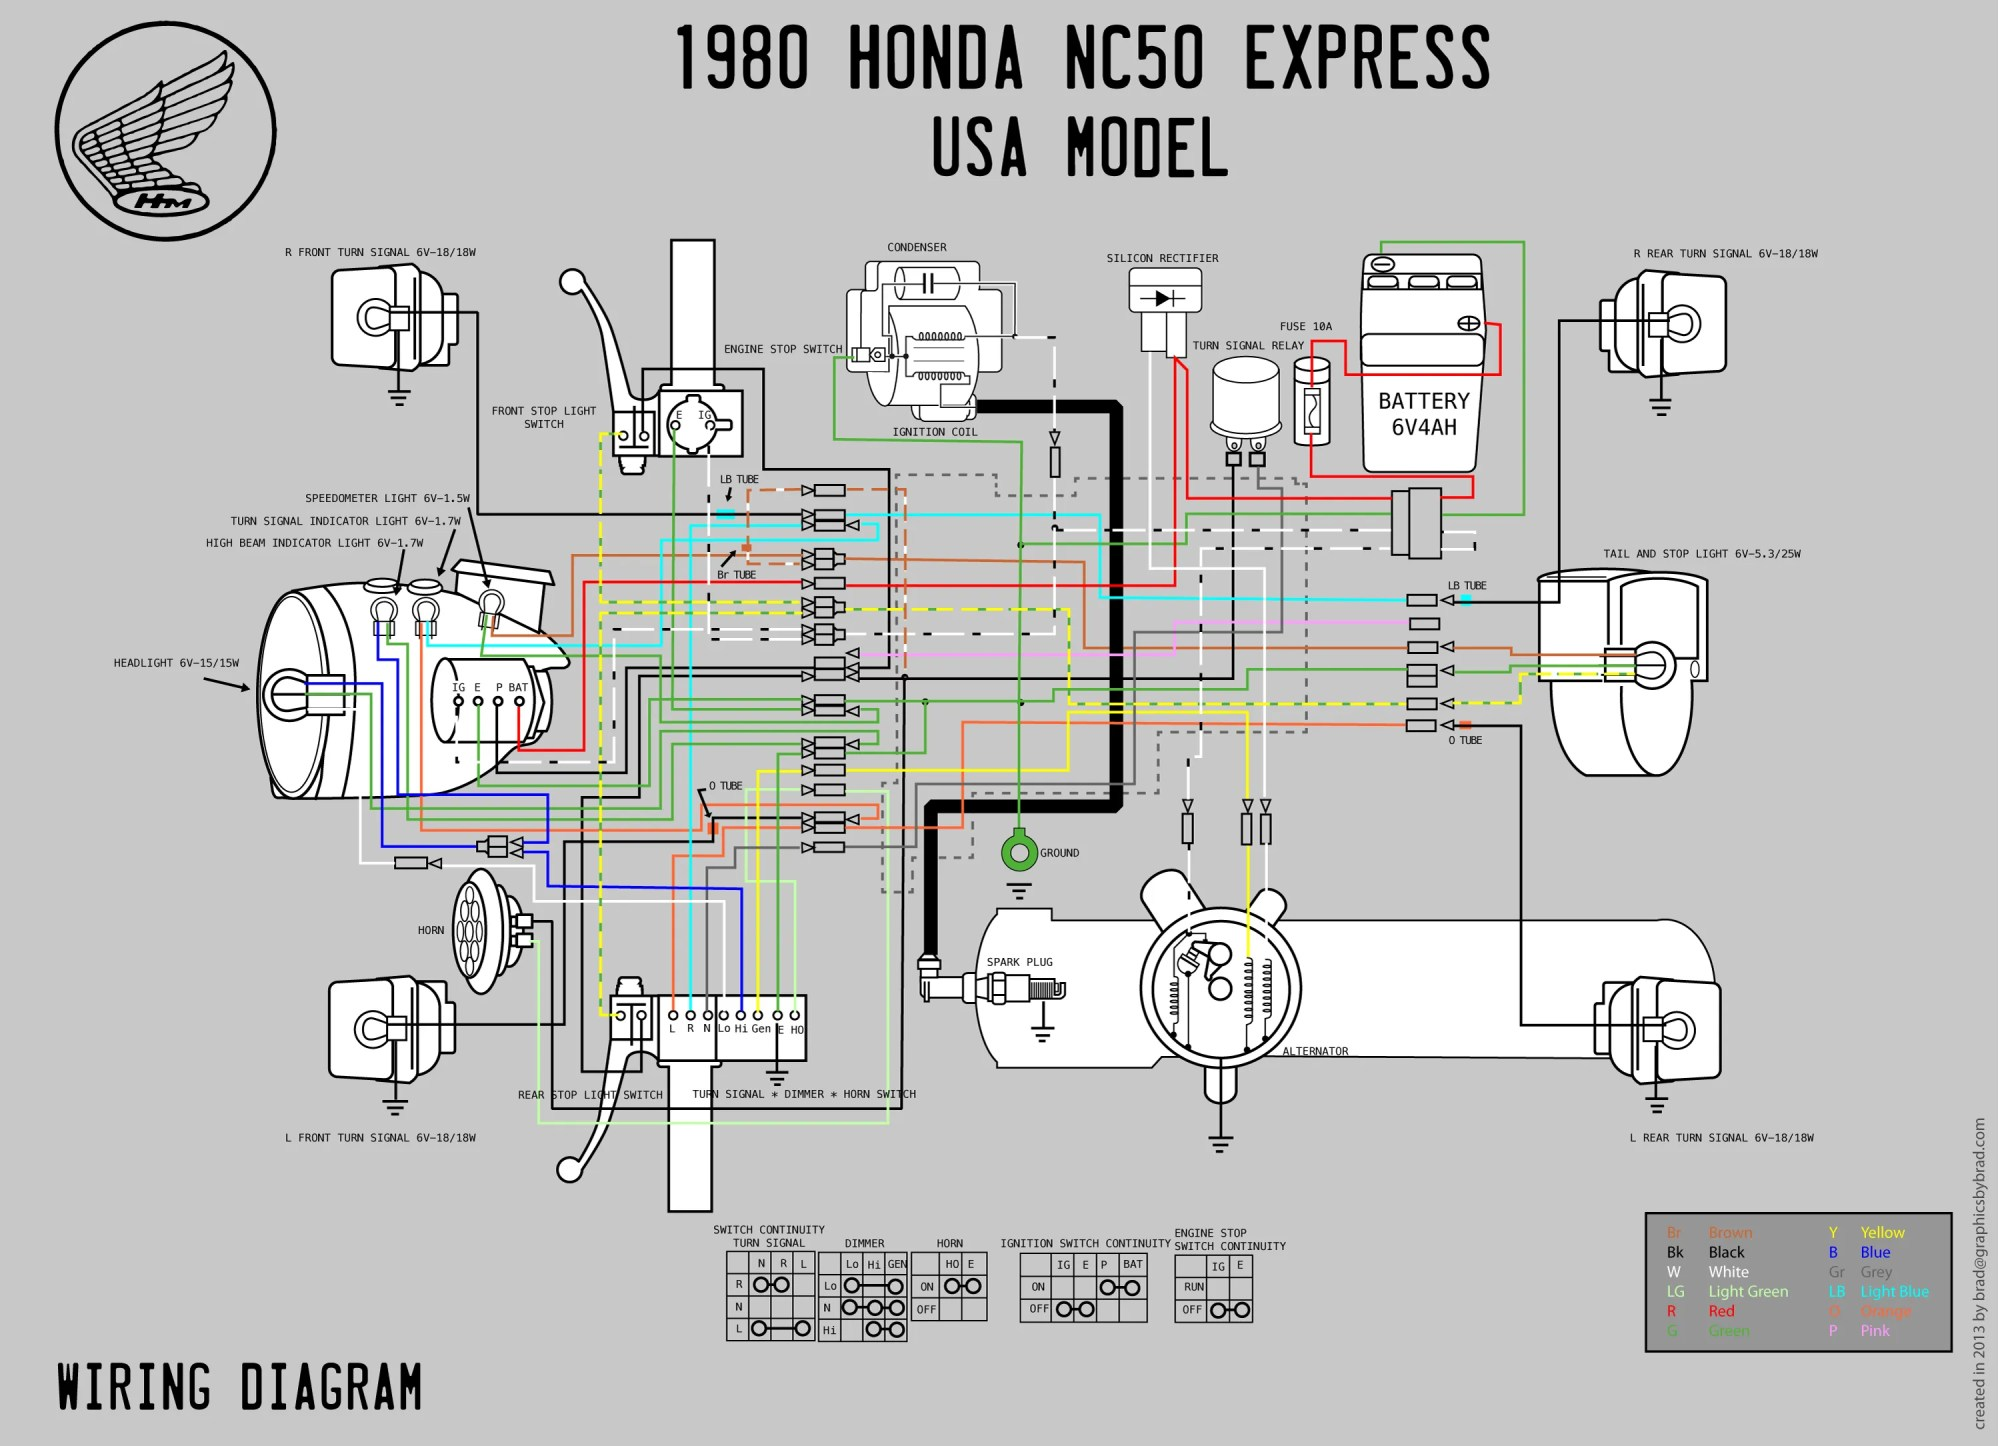 hight resolution of 1980 honda nc50 wiring diagram moped wiki ert electric scooter wiring diagram 1980 nc50 wiring lrg